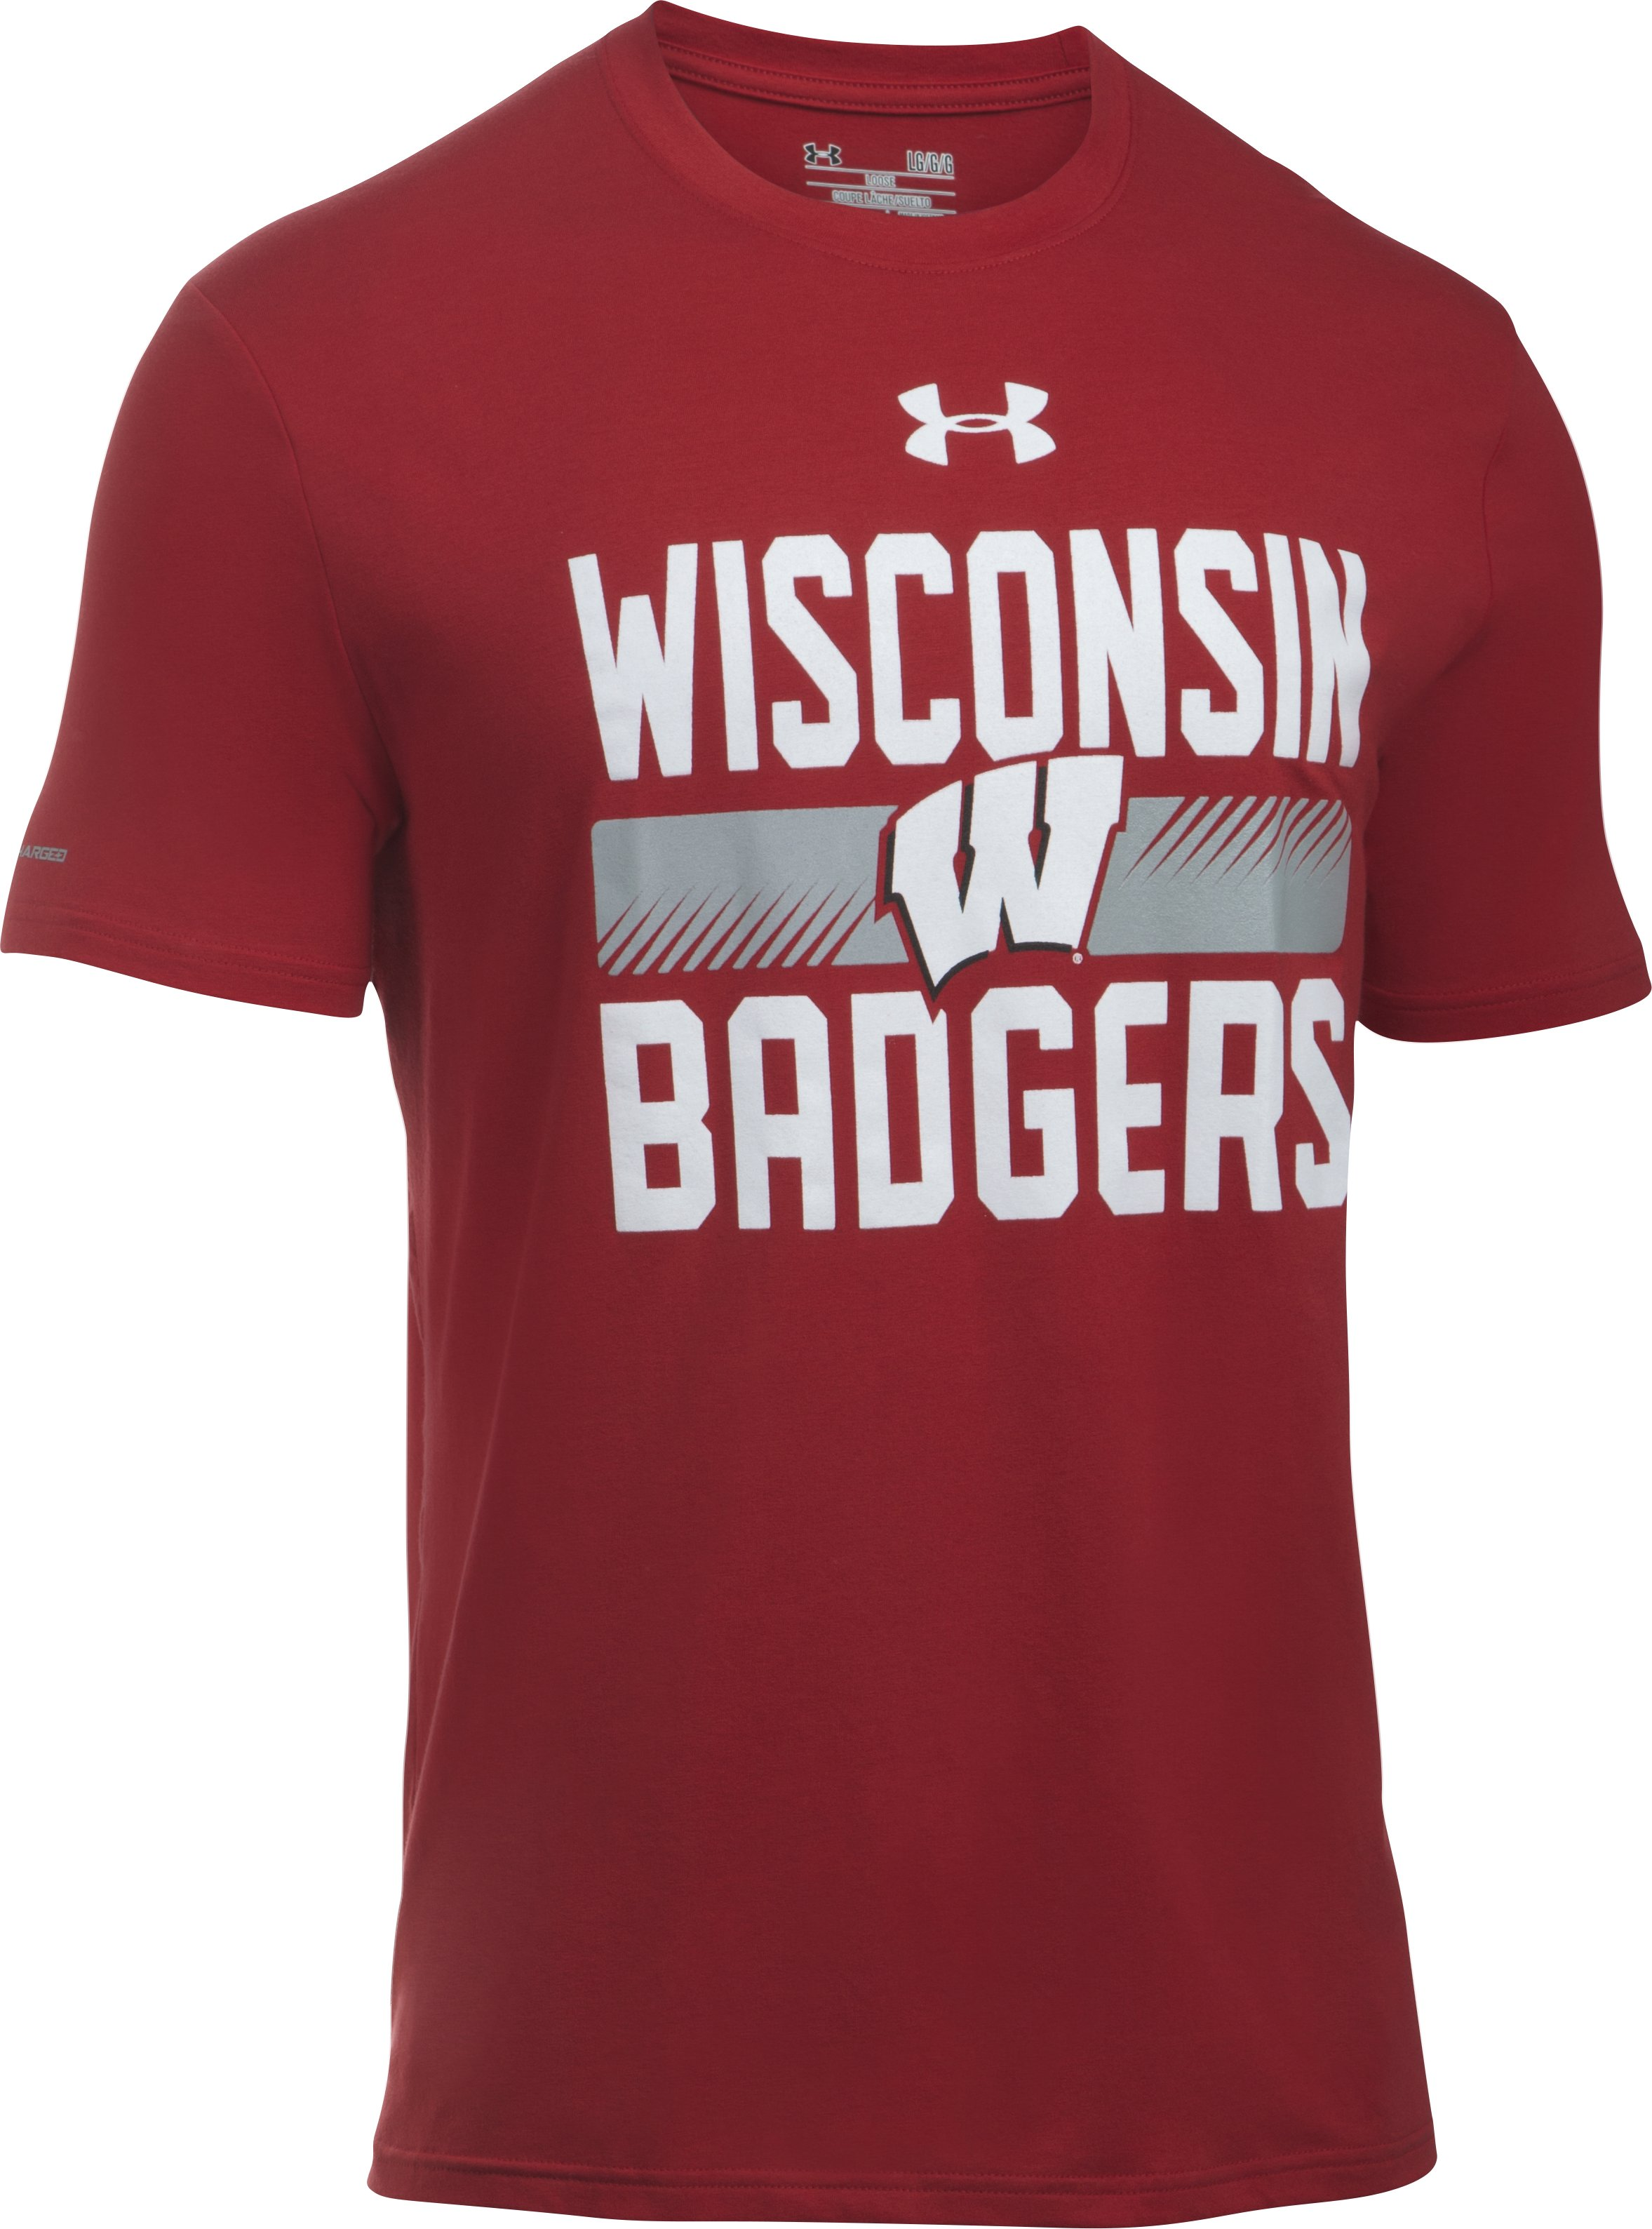 Men's Wisconsin T-Shirt, Flawless, undefined